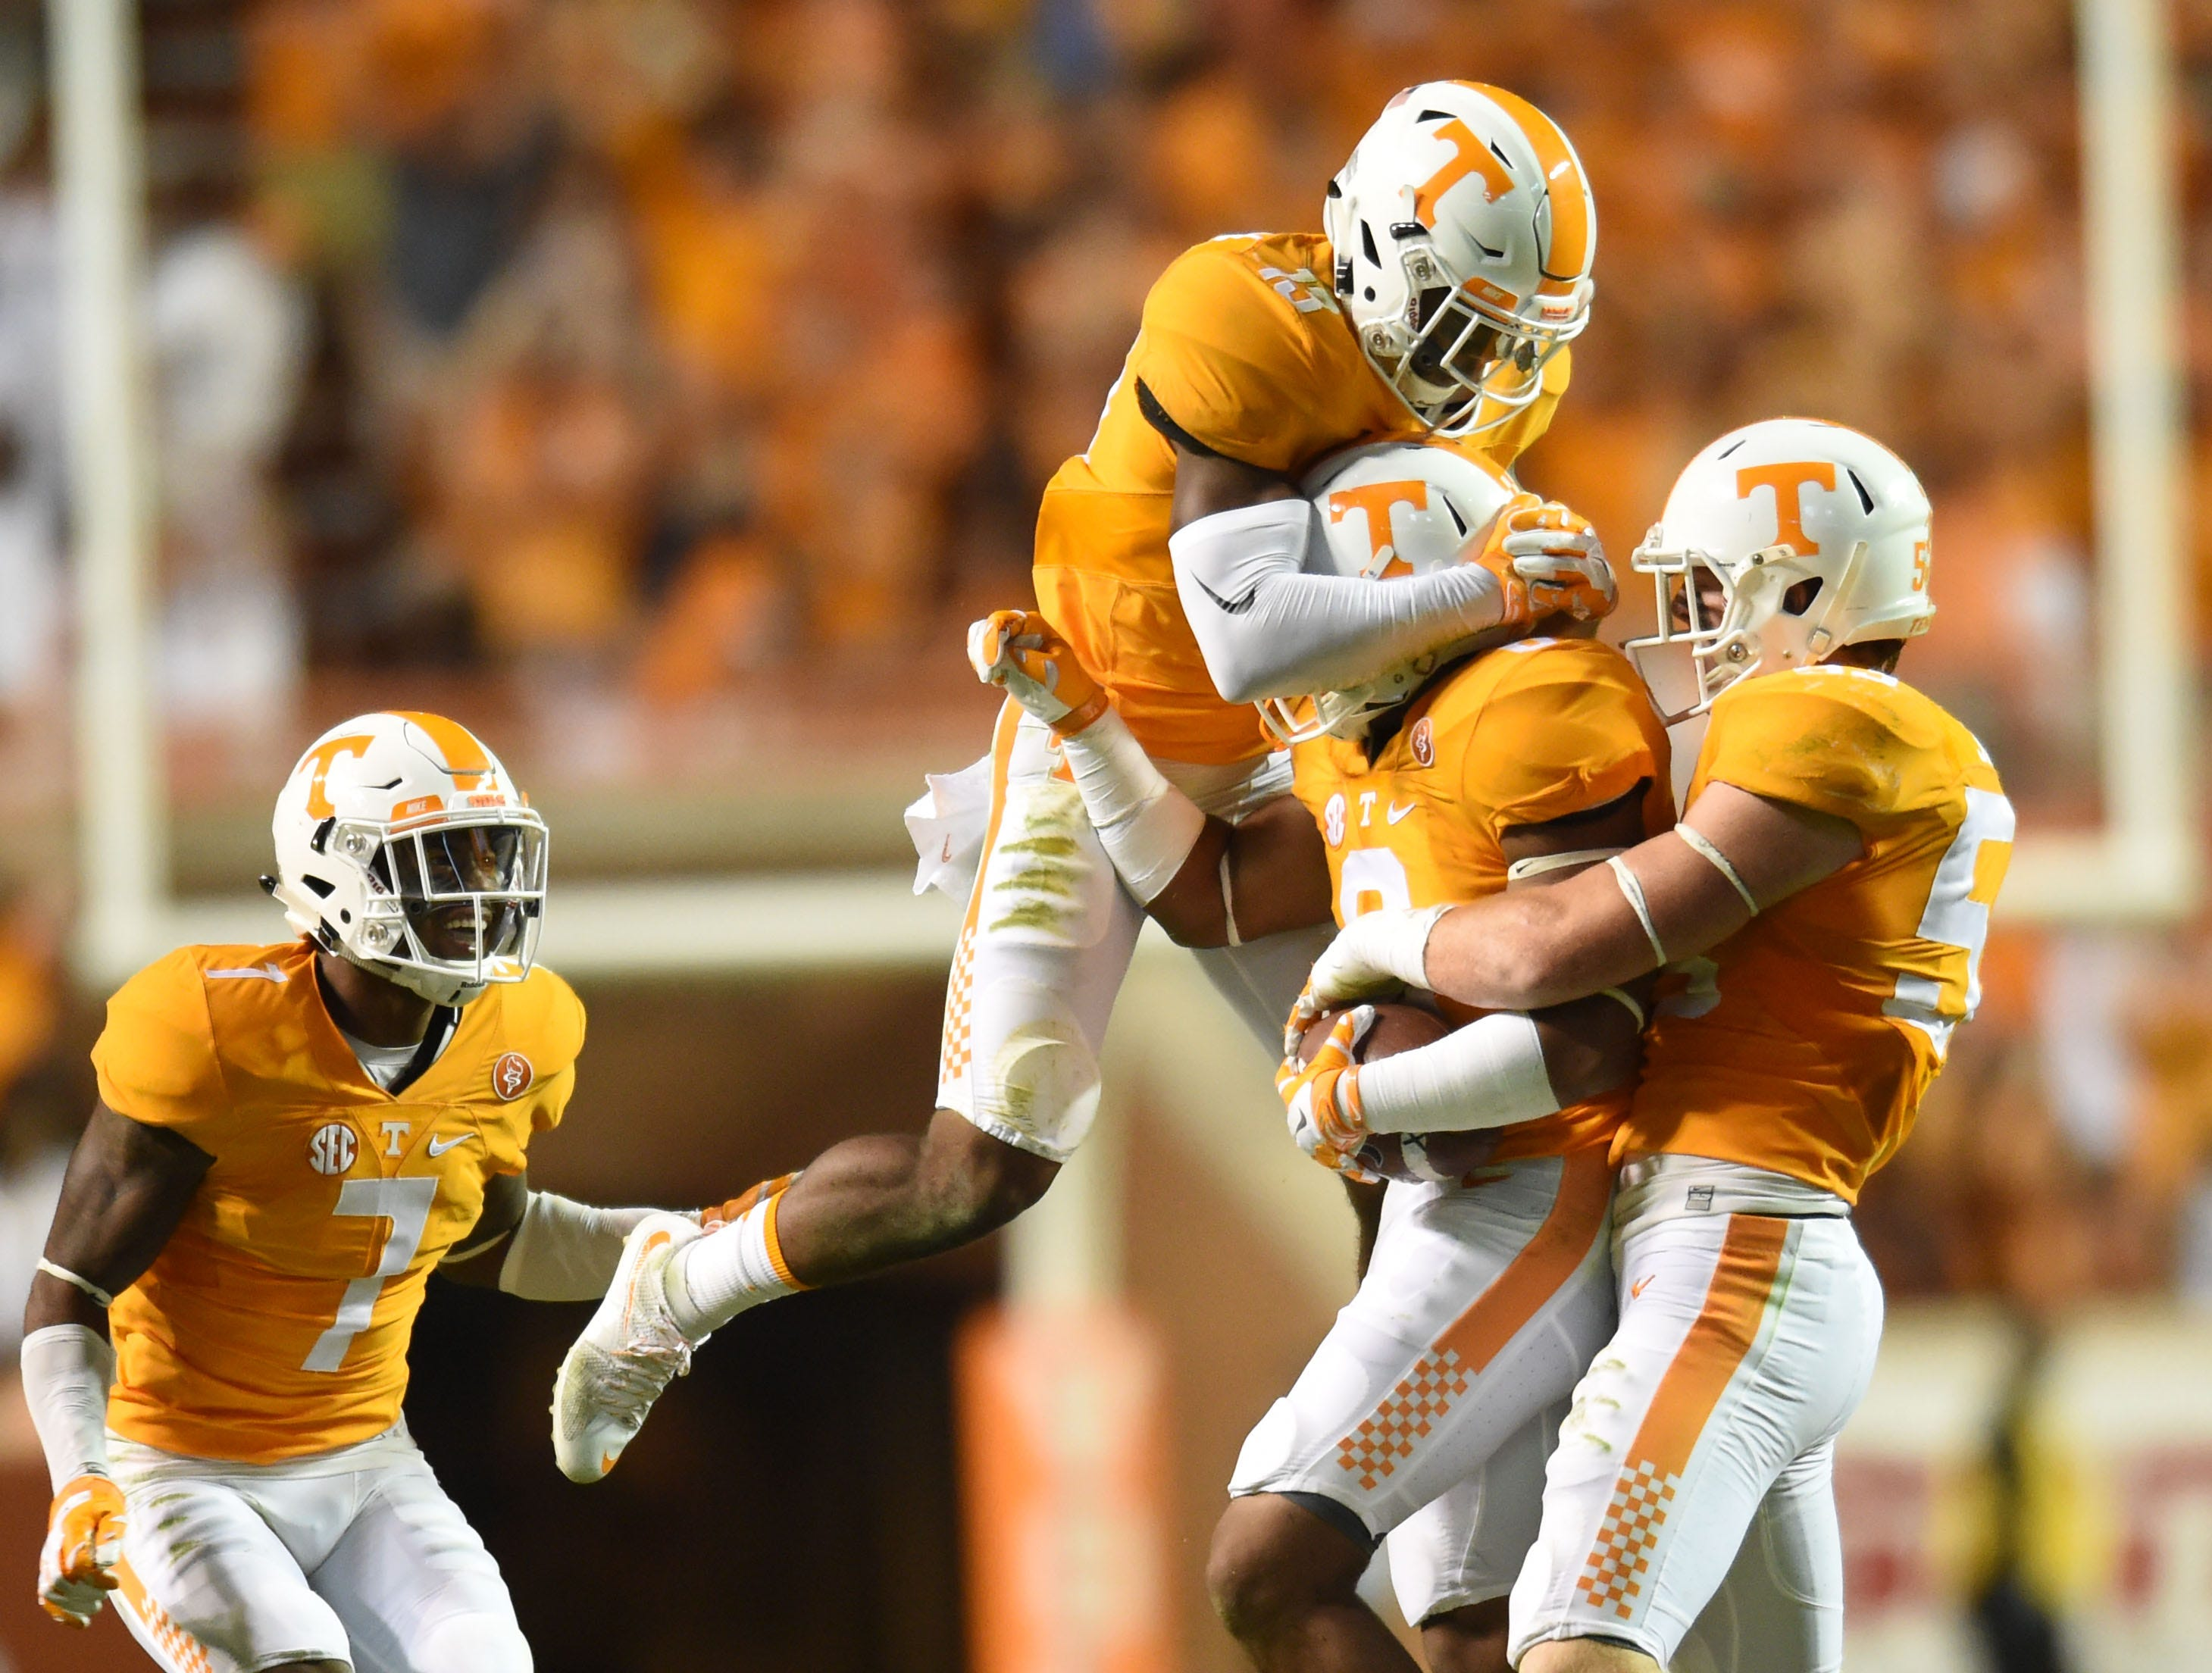 Tennessee defenders celebrate with Todd Kelly Jr. after an interception against Oklahoma during the second half at Neyland Stadium on Saturday, Sept. 12, 2015 in Knoxville, Tenn.